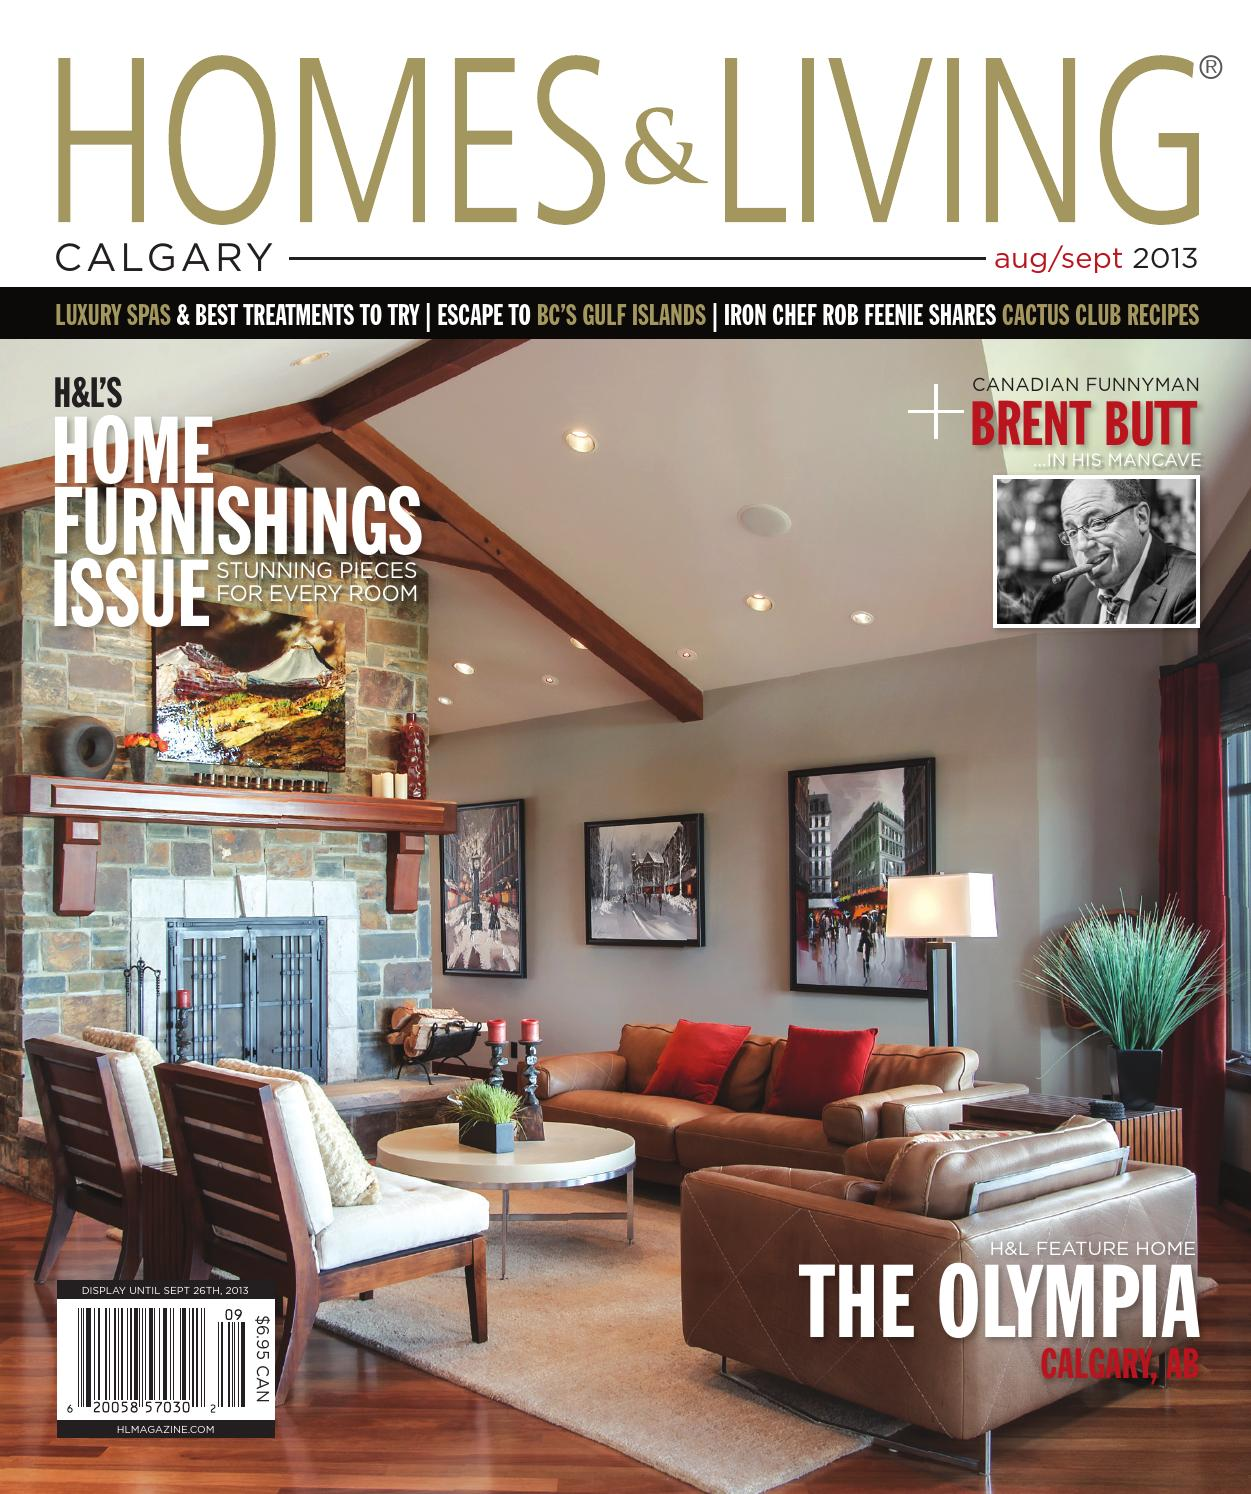 Homes living magazine calgary aug sept 2013 teaser by for Home builders magazine